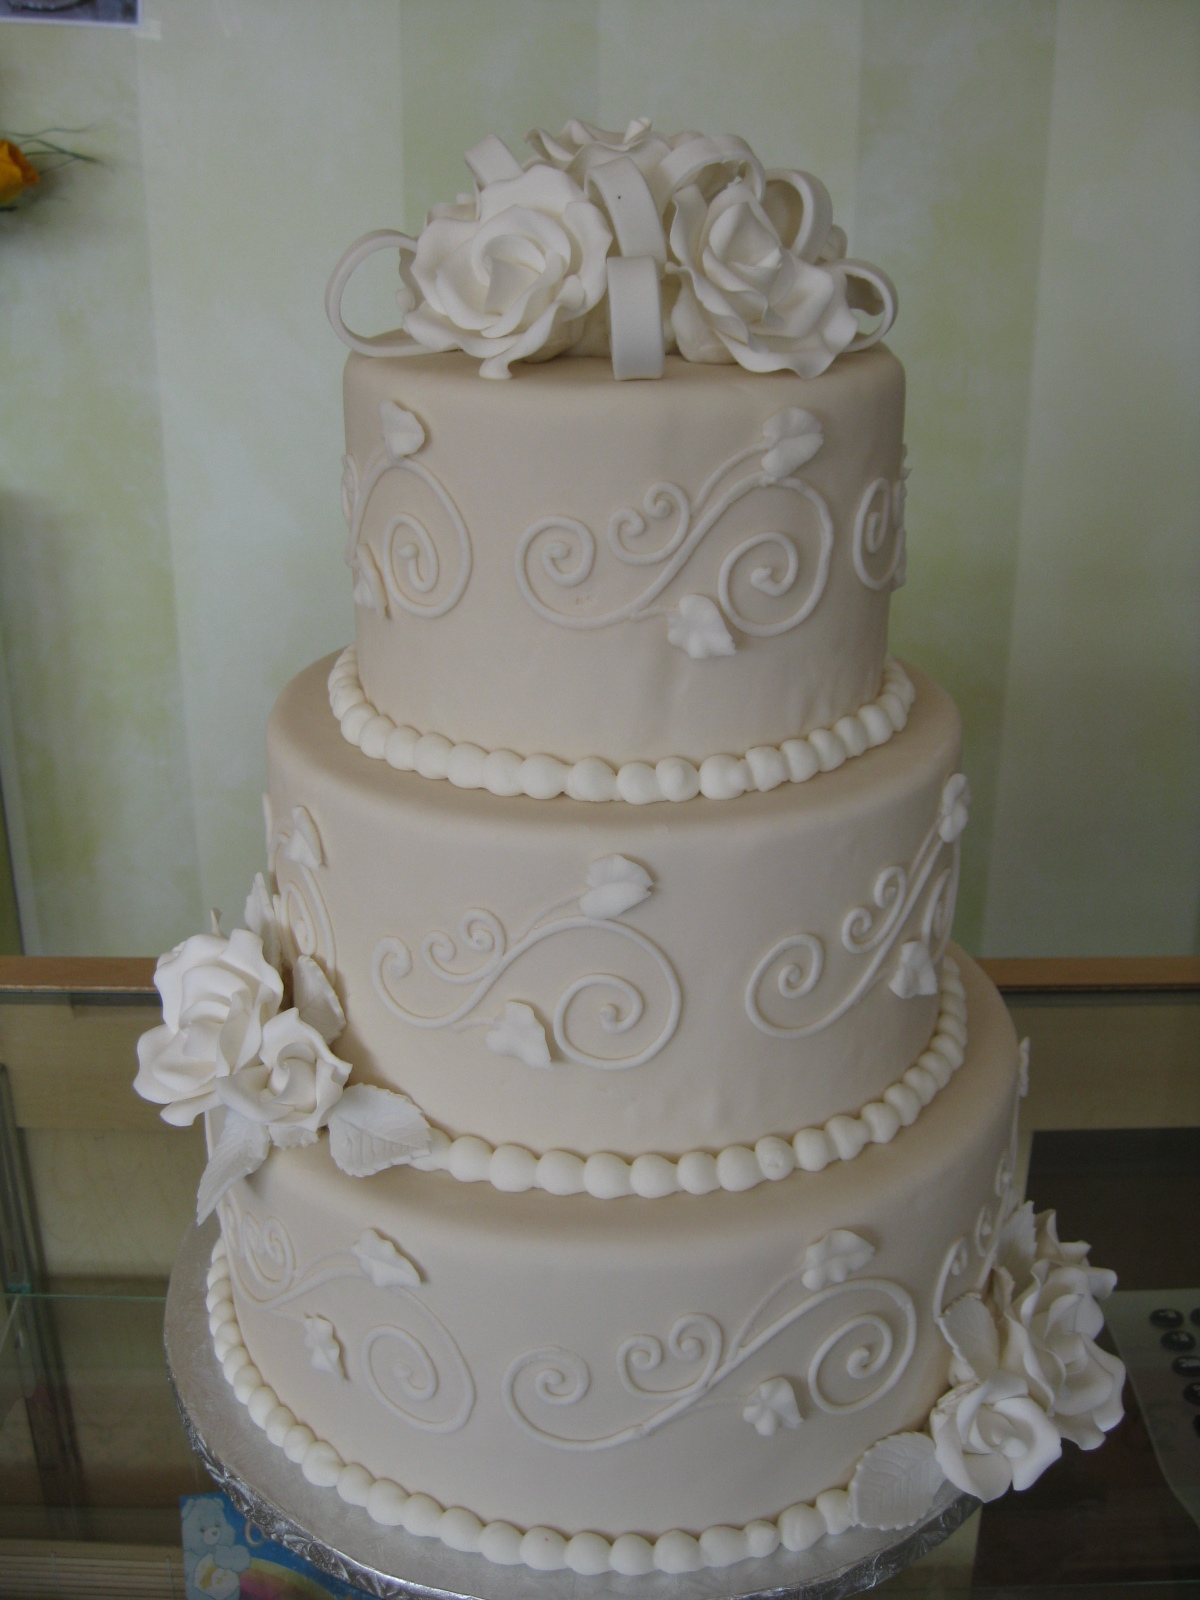 Sugar roses and bowsvendors Simply Cakes Ltd Project Wedding